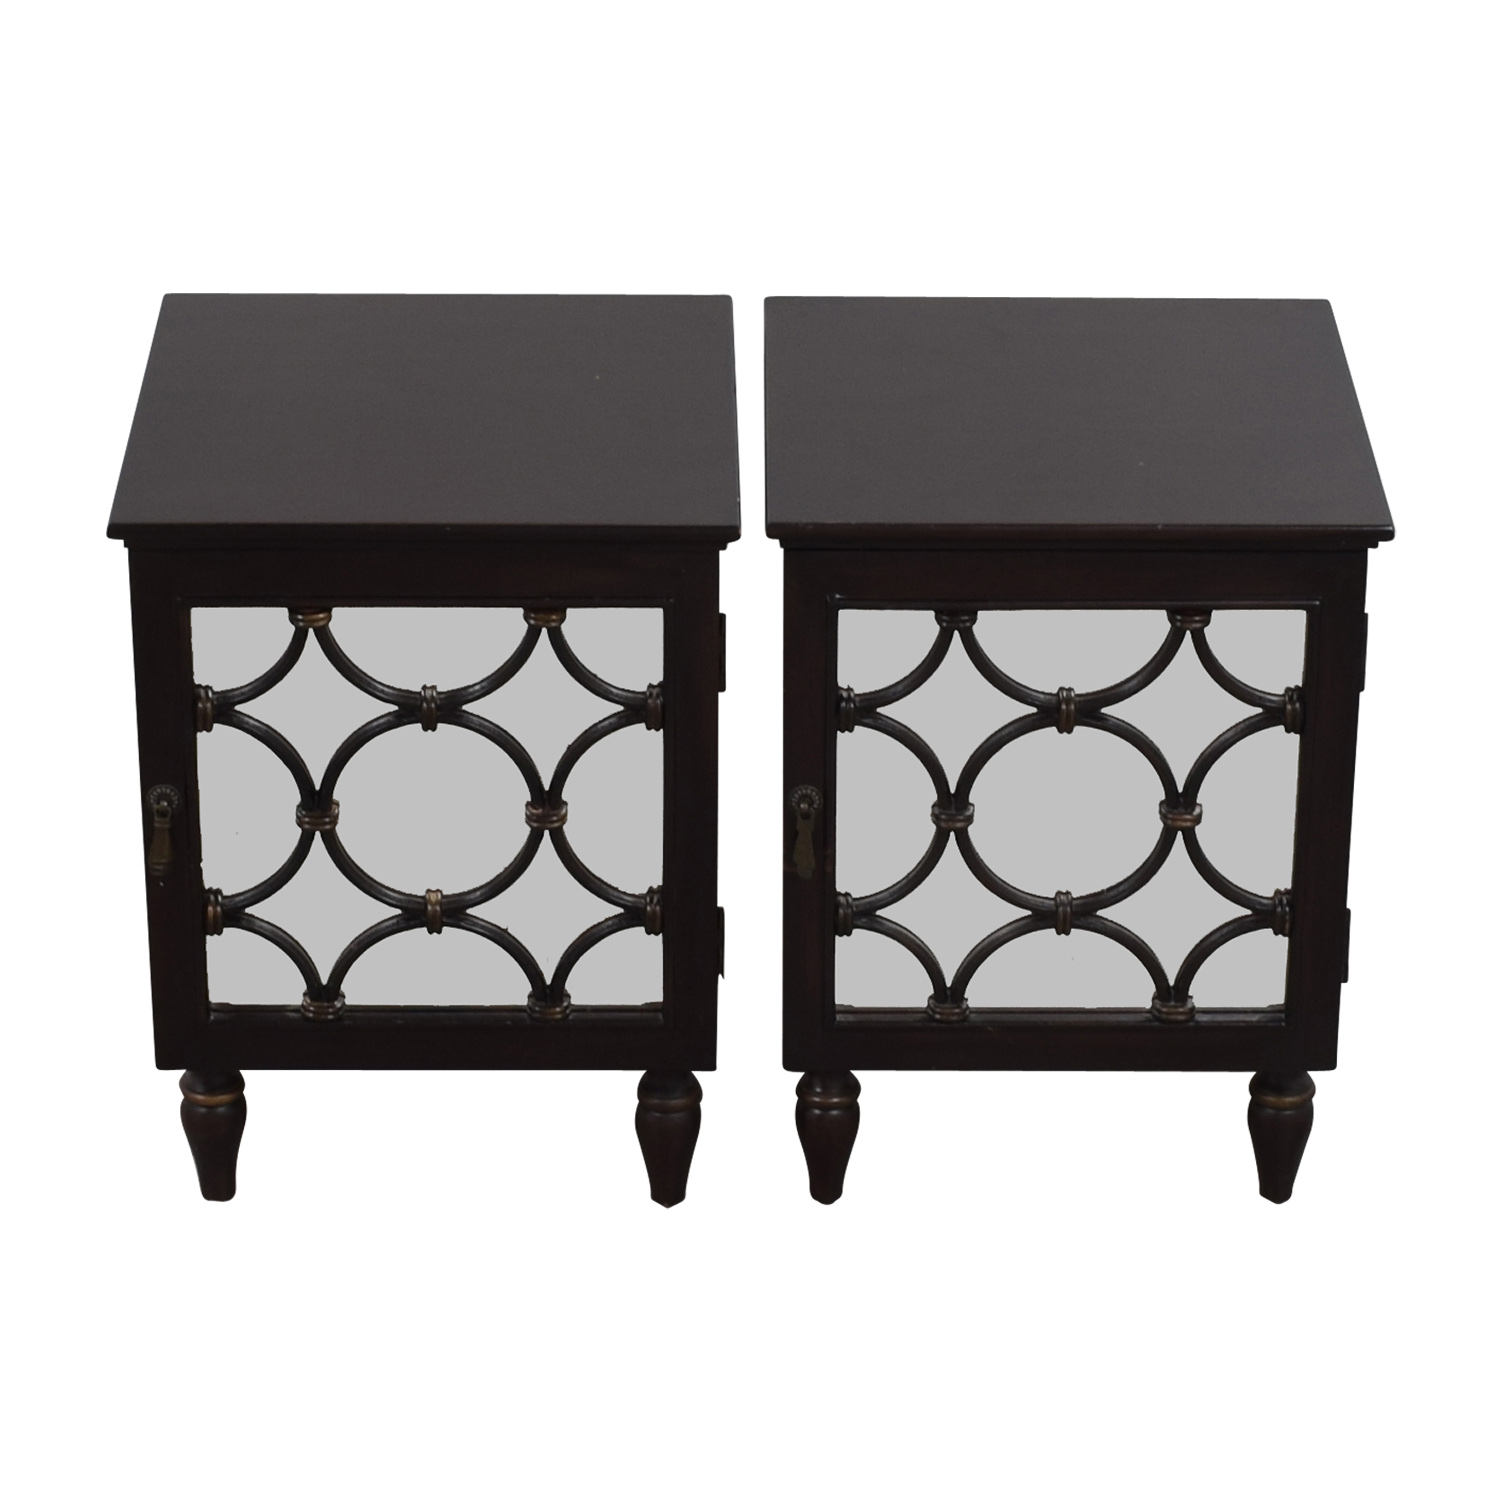 buy Pottery Barn Pottery Barn Mirrored Side Tables online